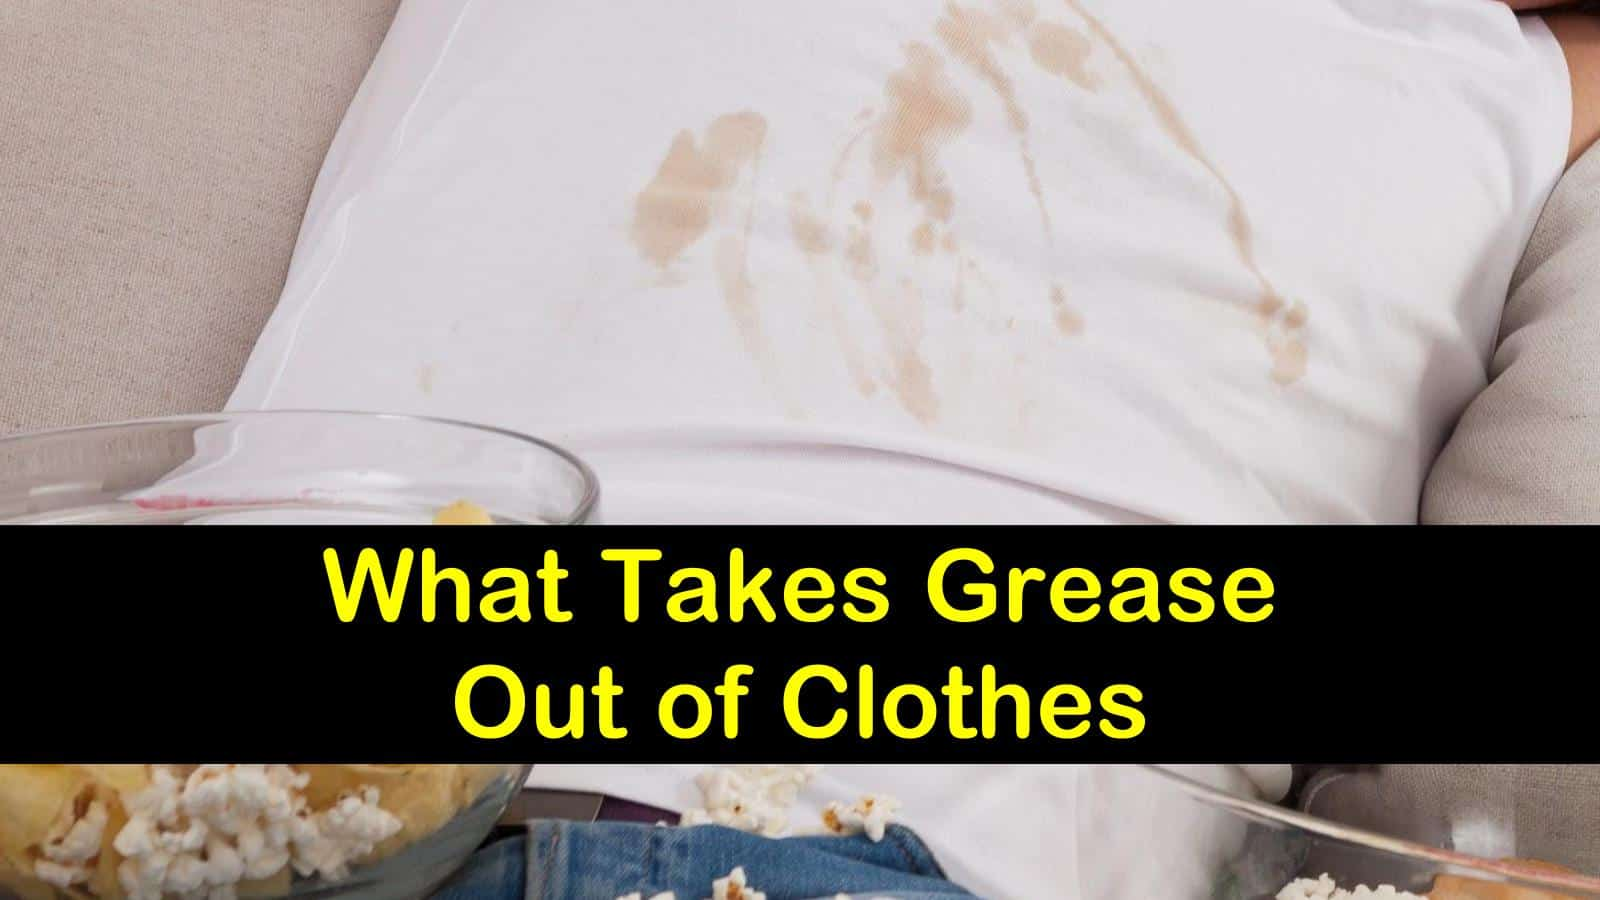 what takes grease out of clothes titleimg1